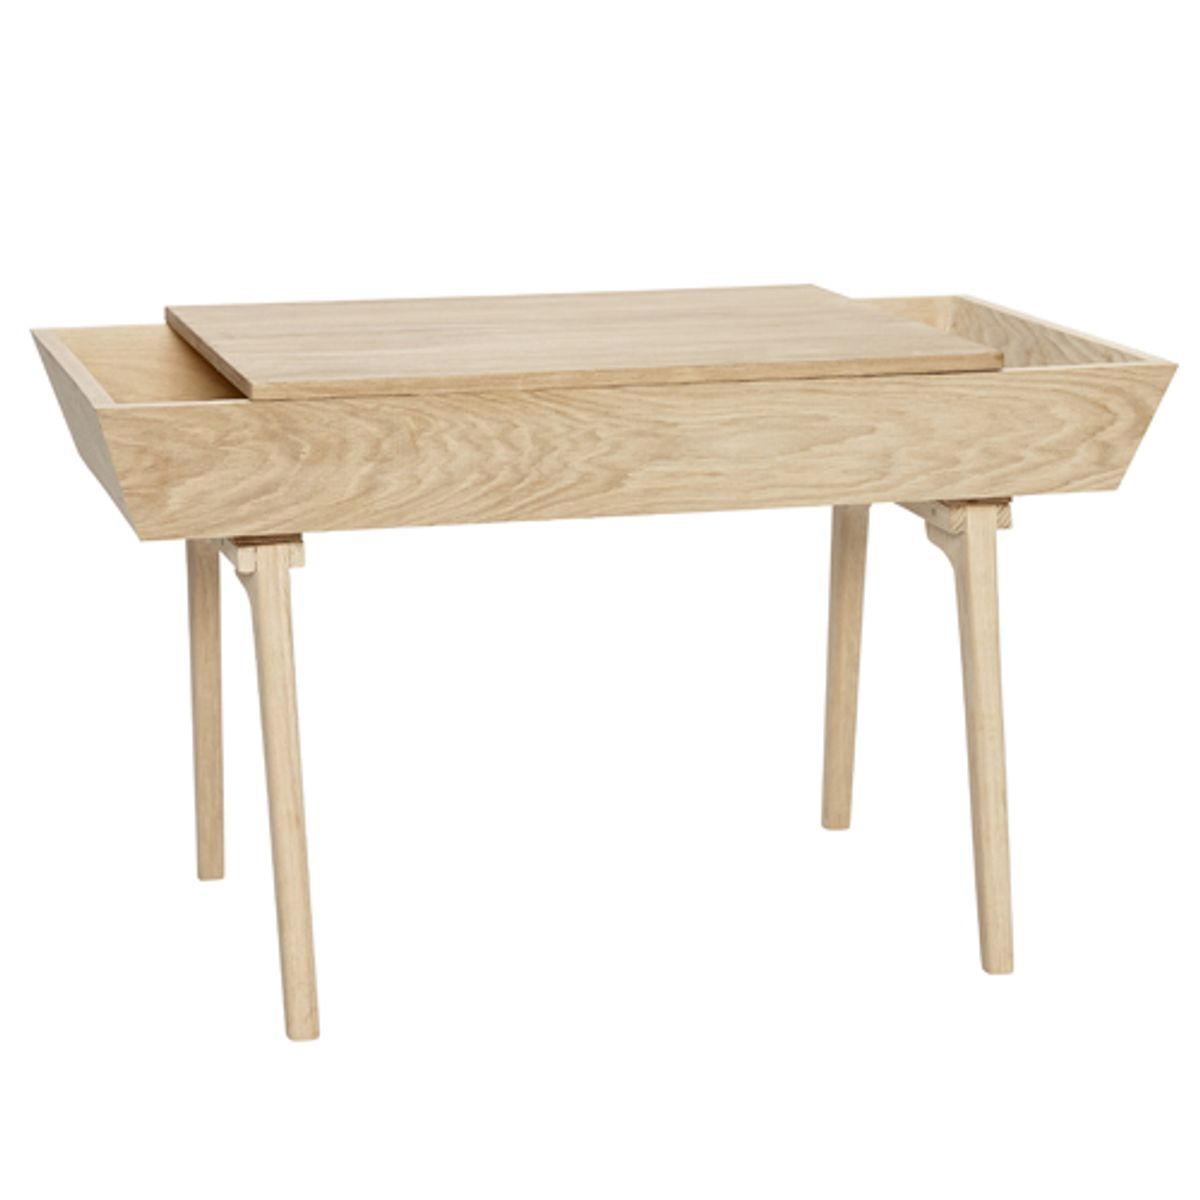 Table basse en chêne naturel avec 2 compartiments Hübsch